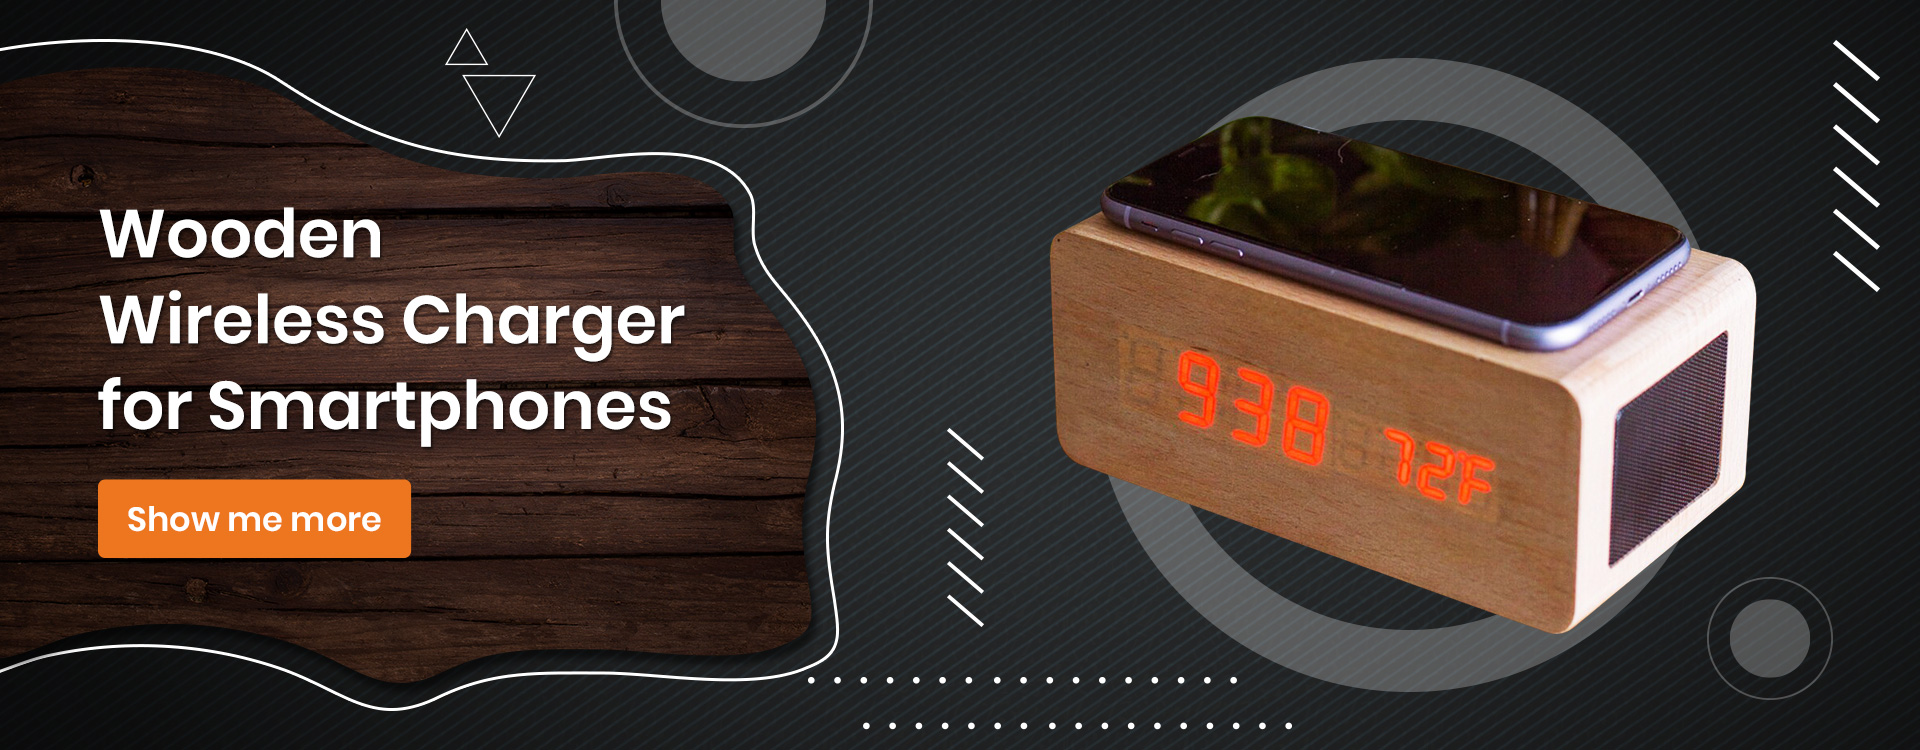 Wooden Wireless Charger for Smartphones